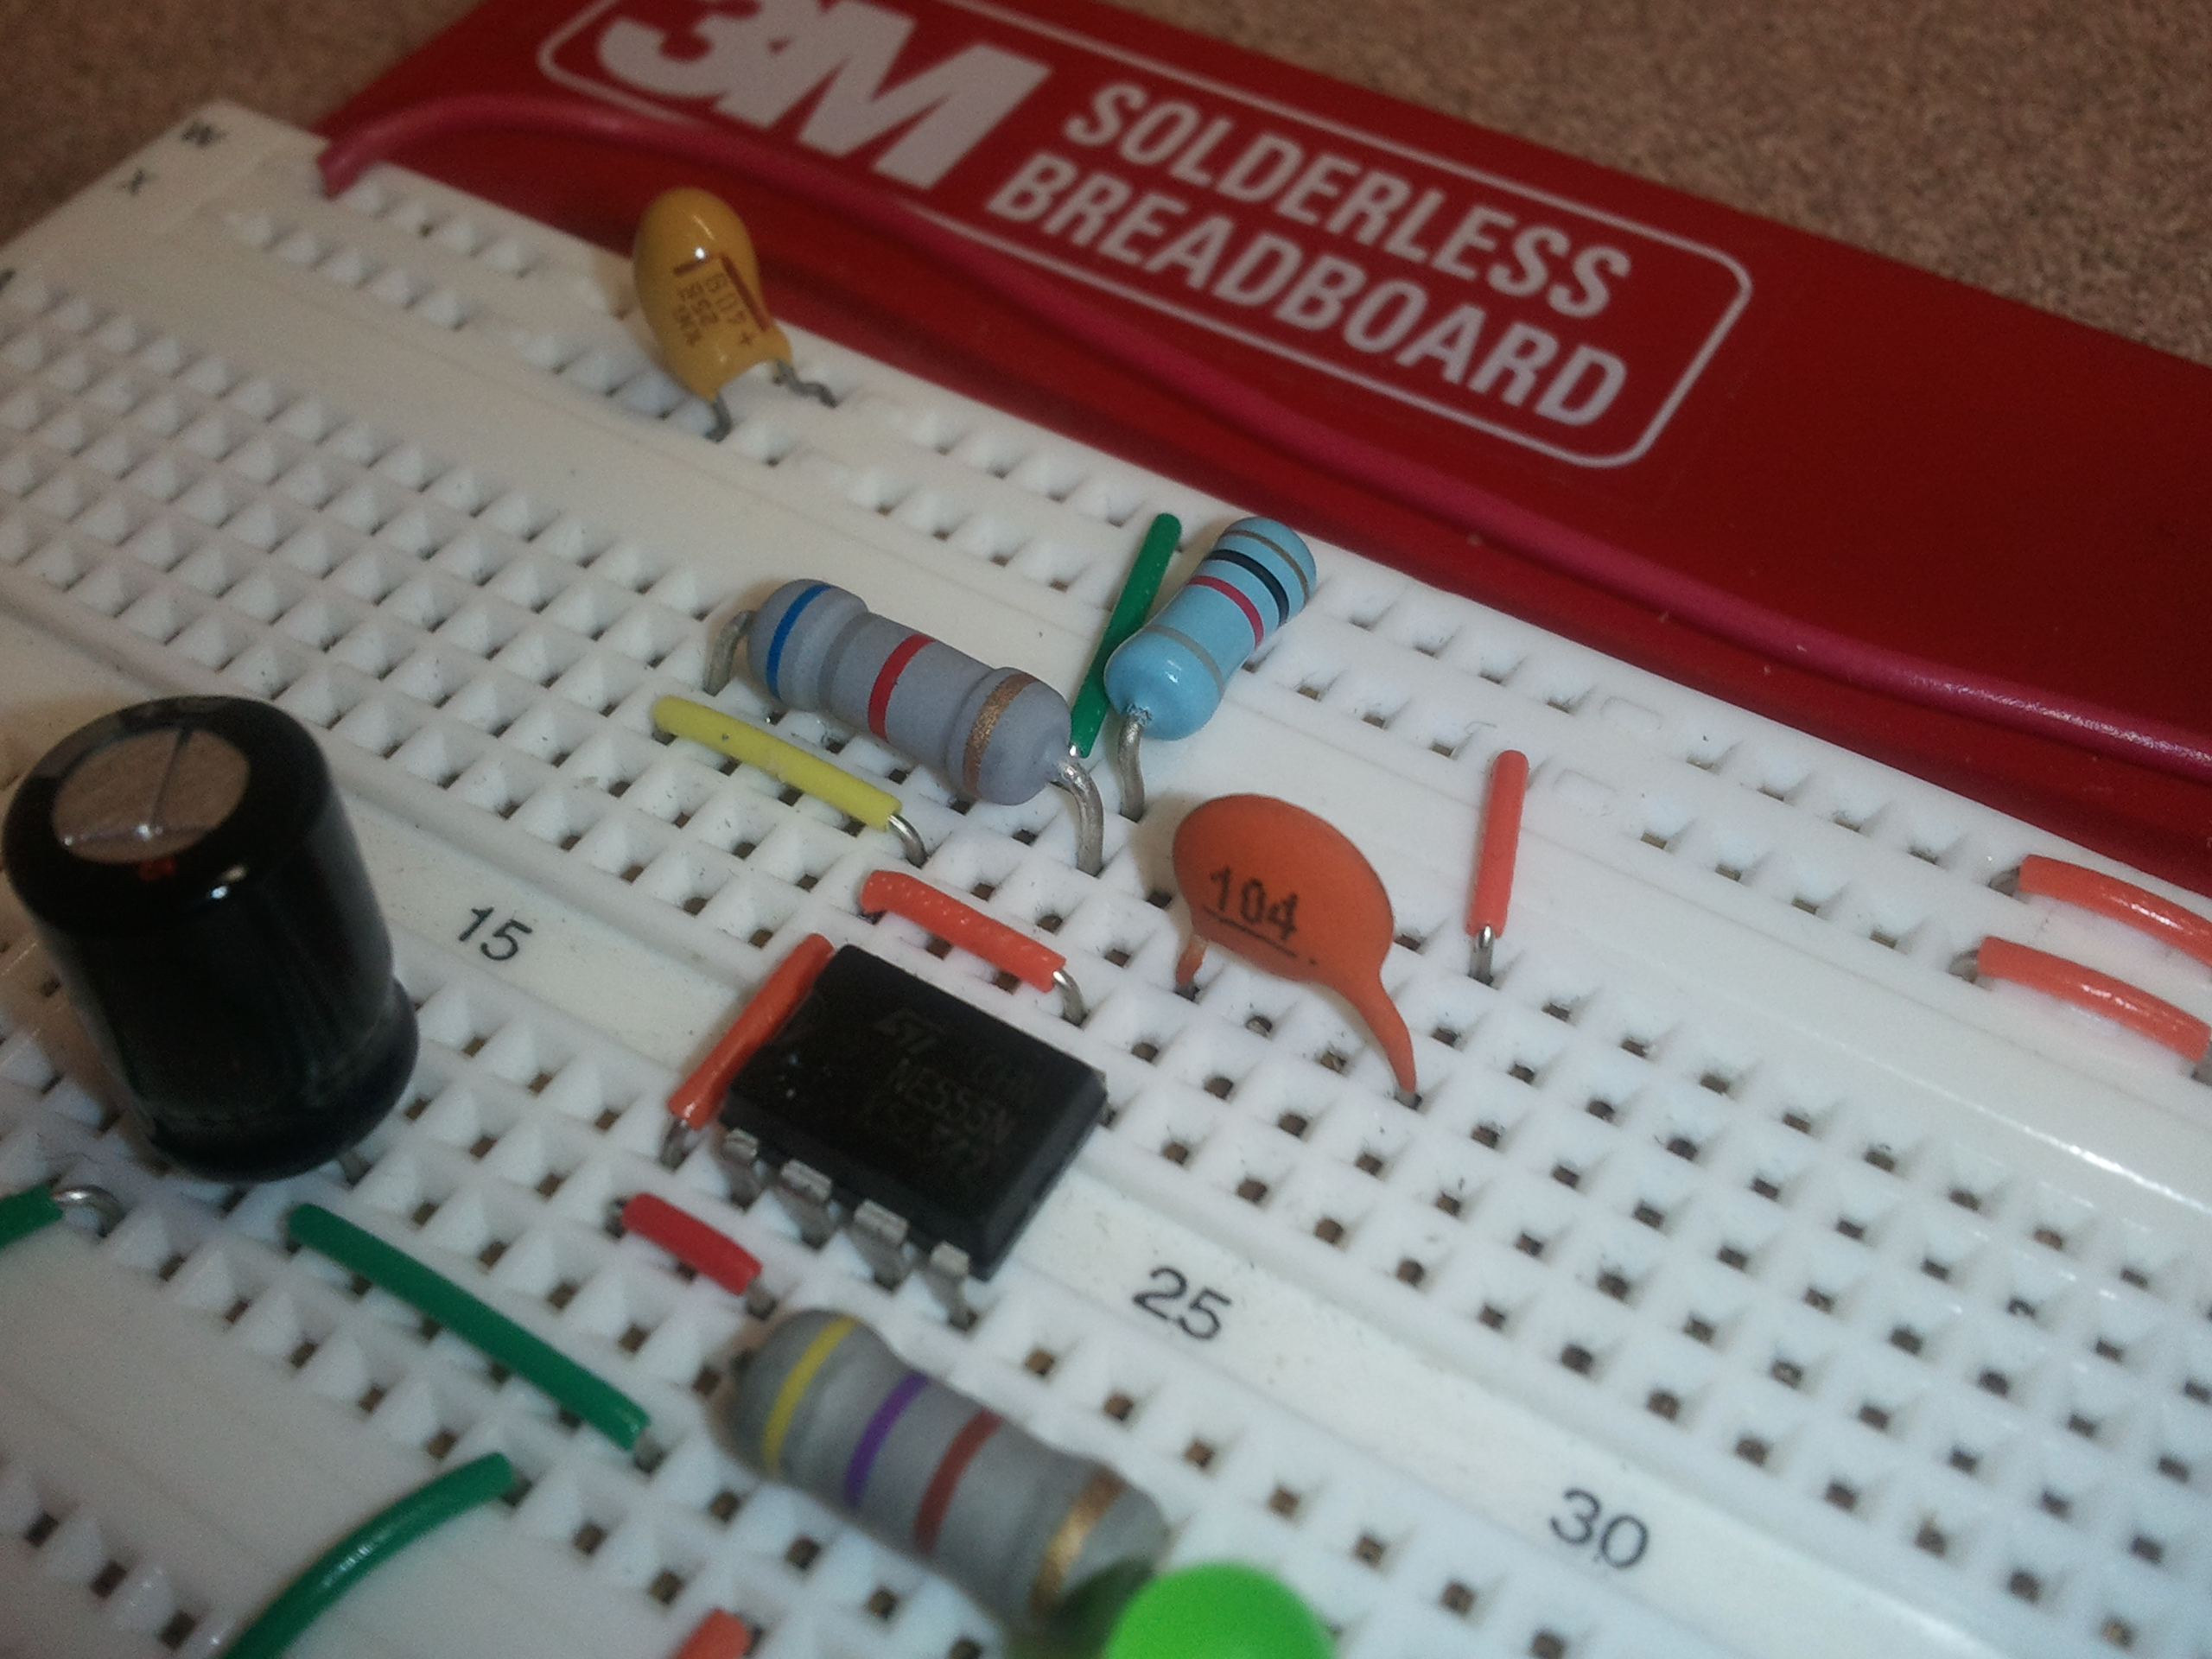 Introduction To Breadboarding The Paleotechnologist 555timer Alternating Blinking Led Circuit Issue 100uf Cap And